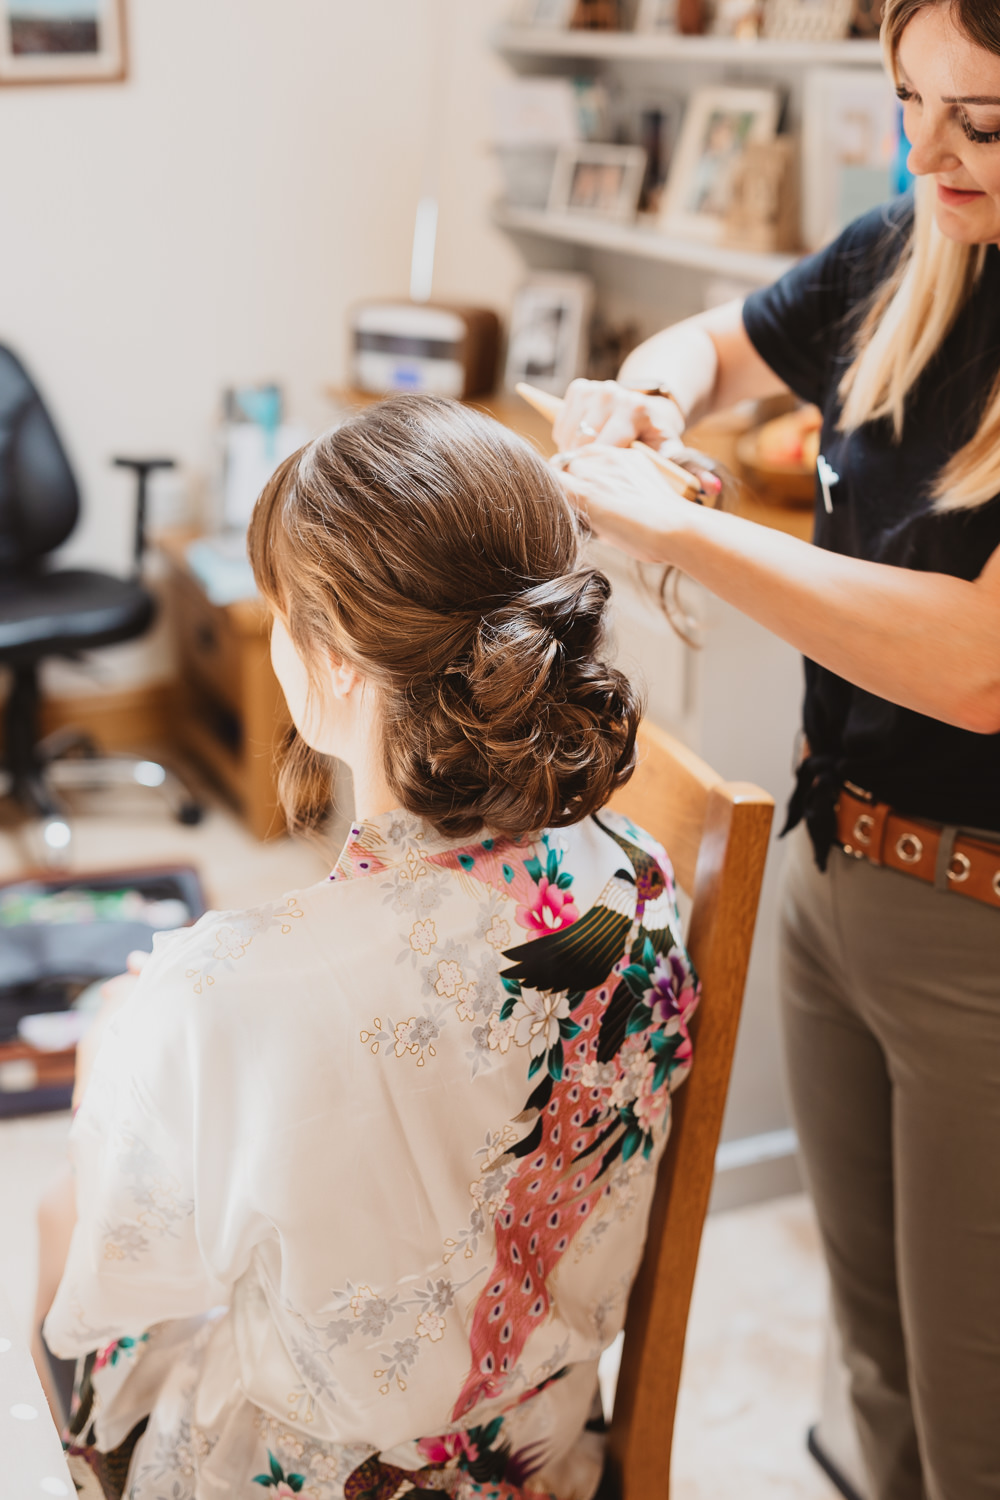 Bride Bridal Hair Style Up Do Bun Clear Marquee Wedding Sarah Brookes Photography